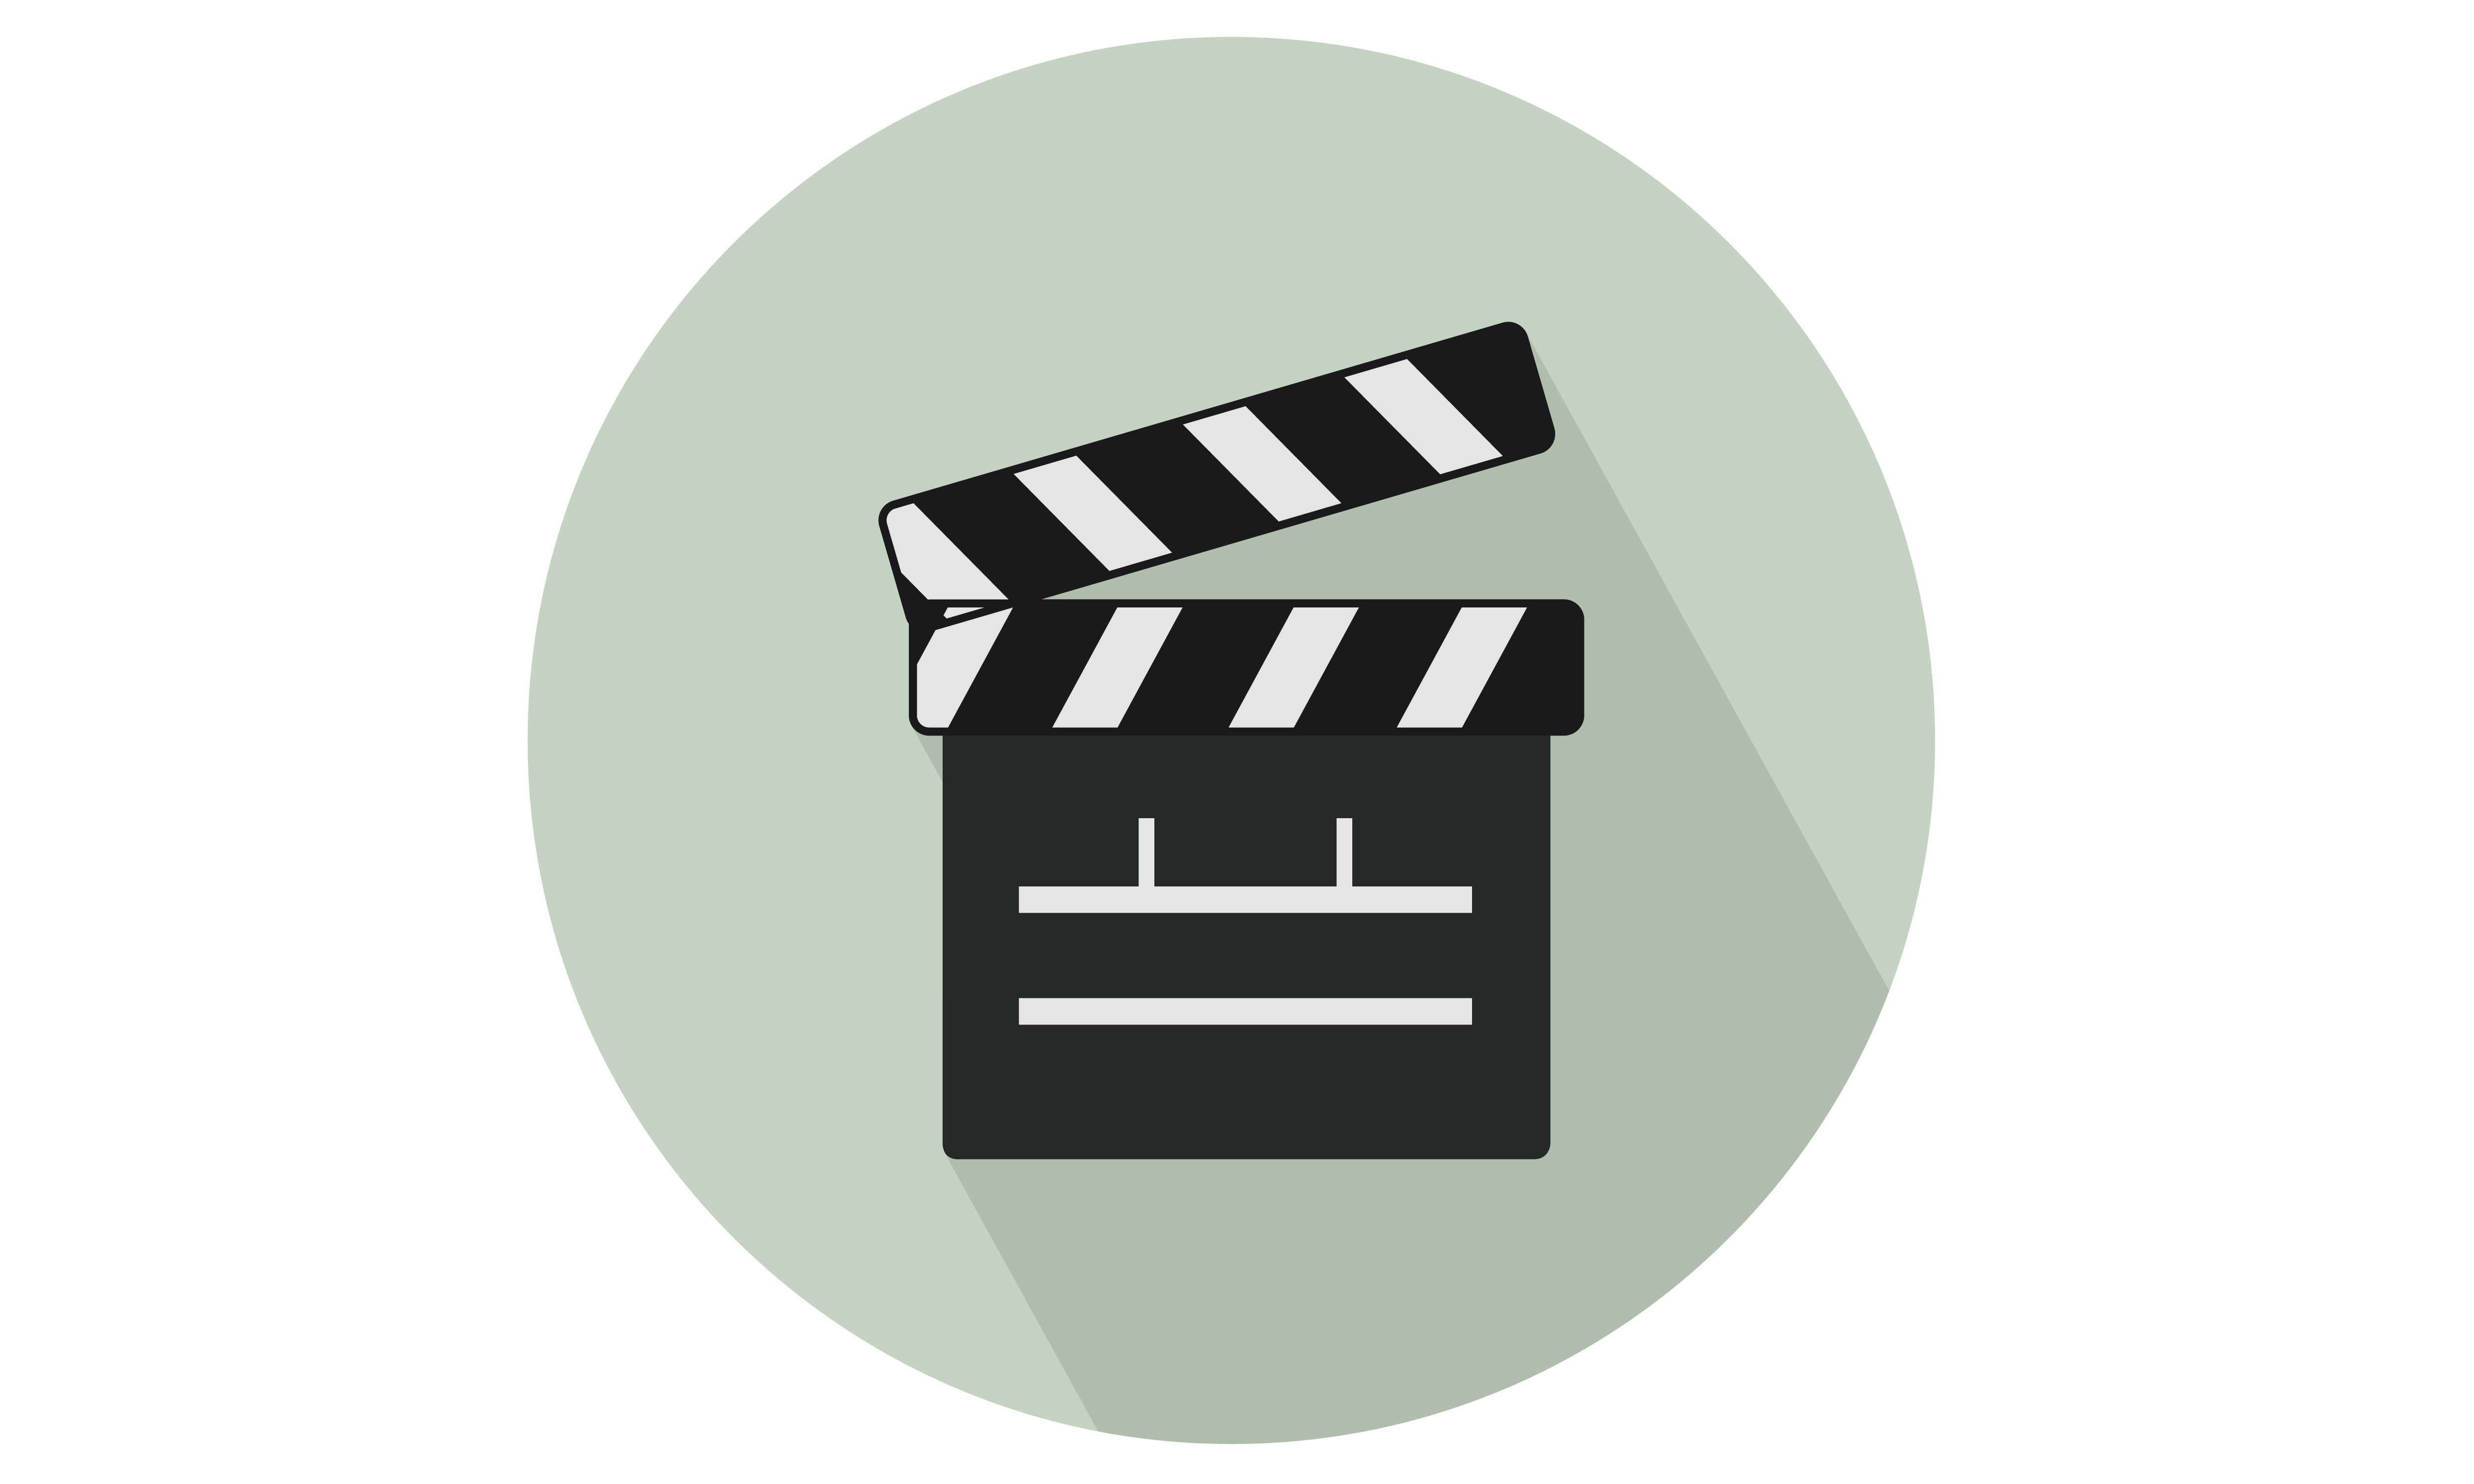 Cinema Clapperboard Vector Icon with background and shadow